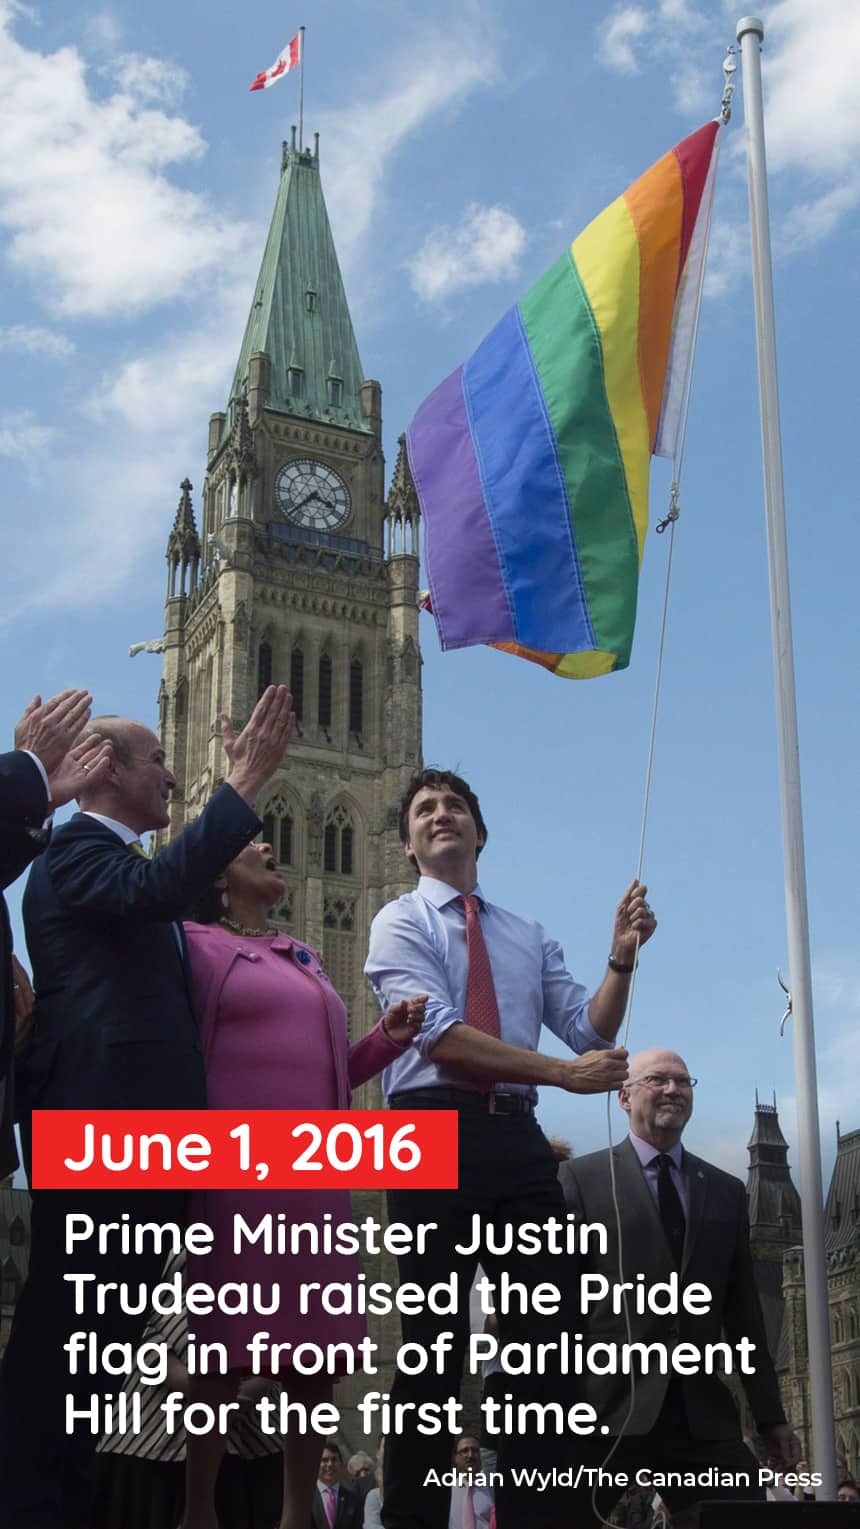 A man raises a pride flag in front of Parliament